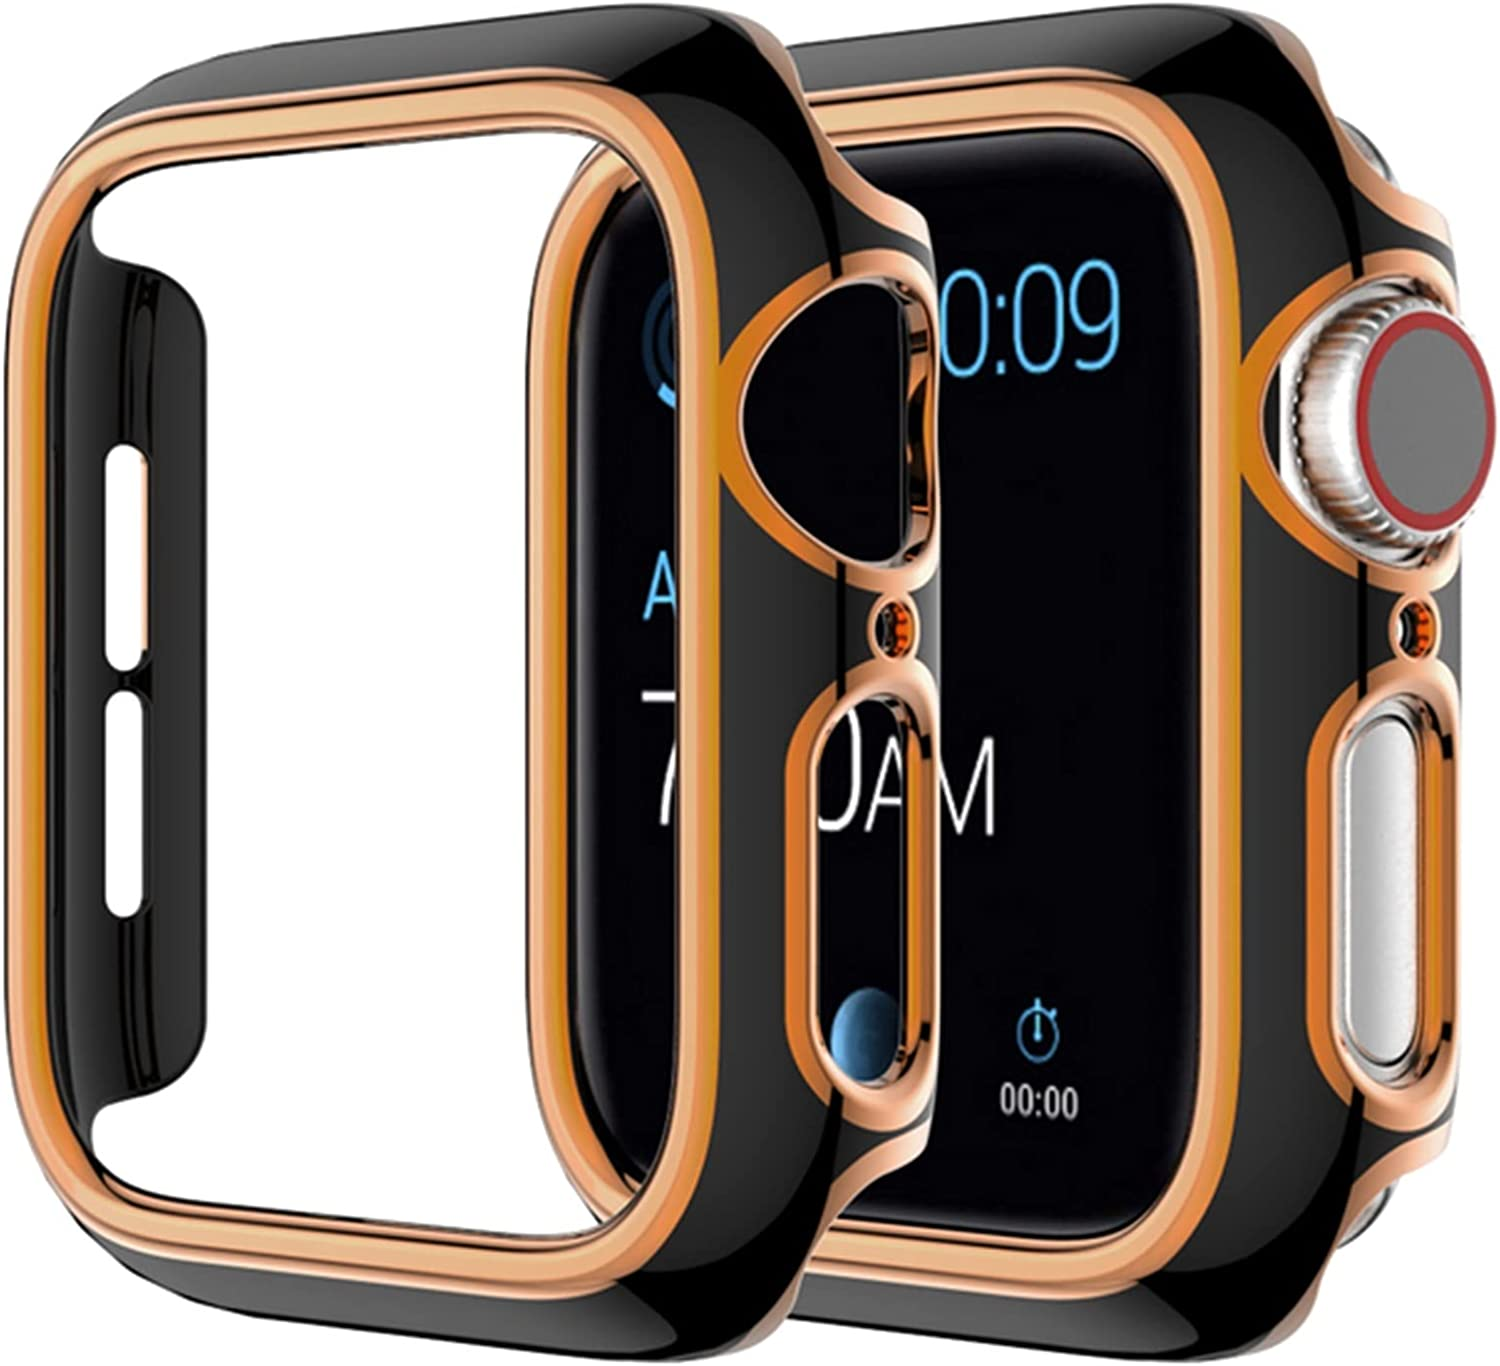 ZQAFAC Watch Case Overseas Gorgeous parallel import regular item for Apple Series Se 6 1 4 3 Compatib 2 5